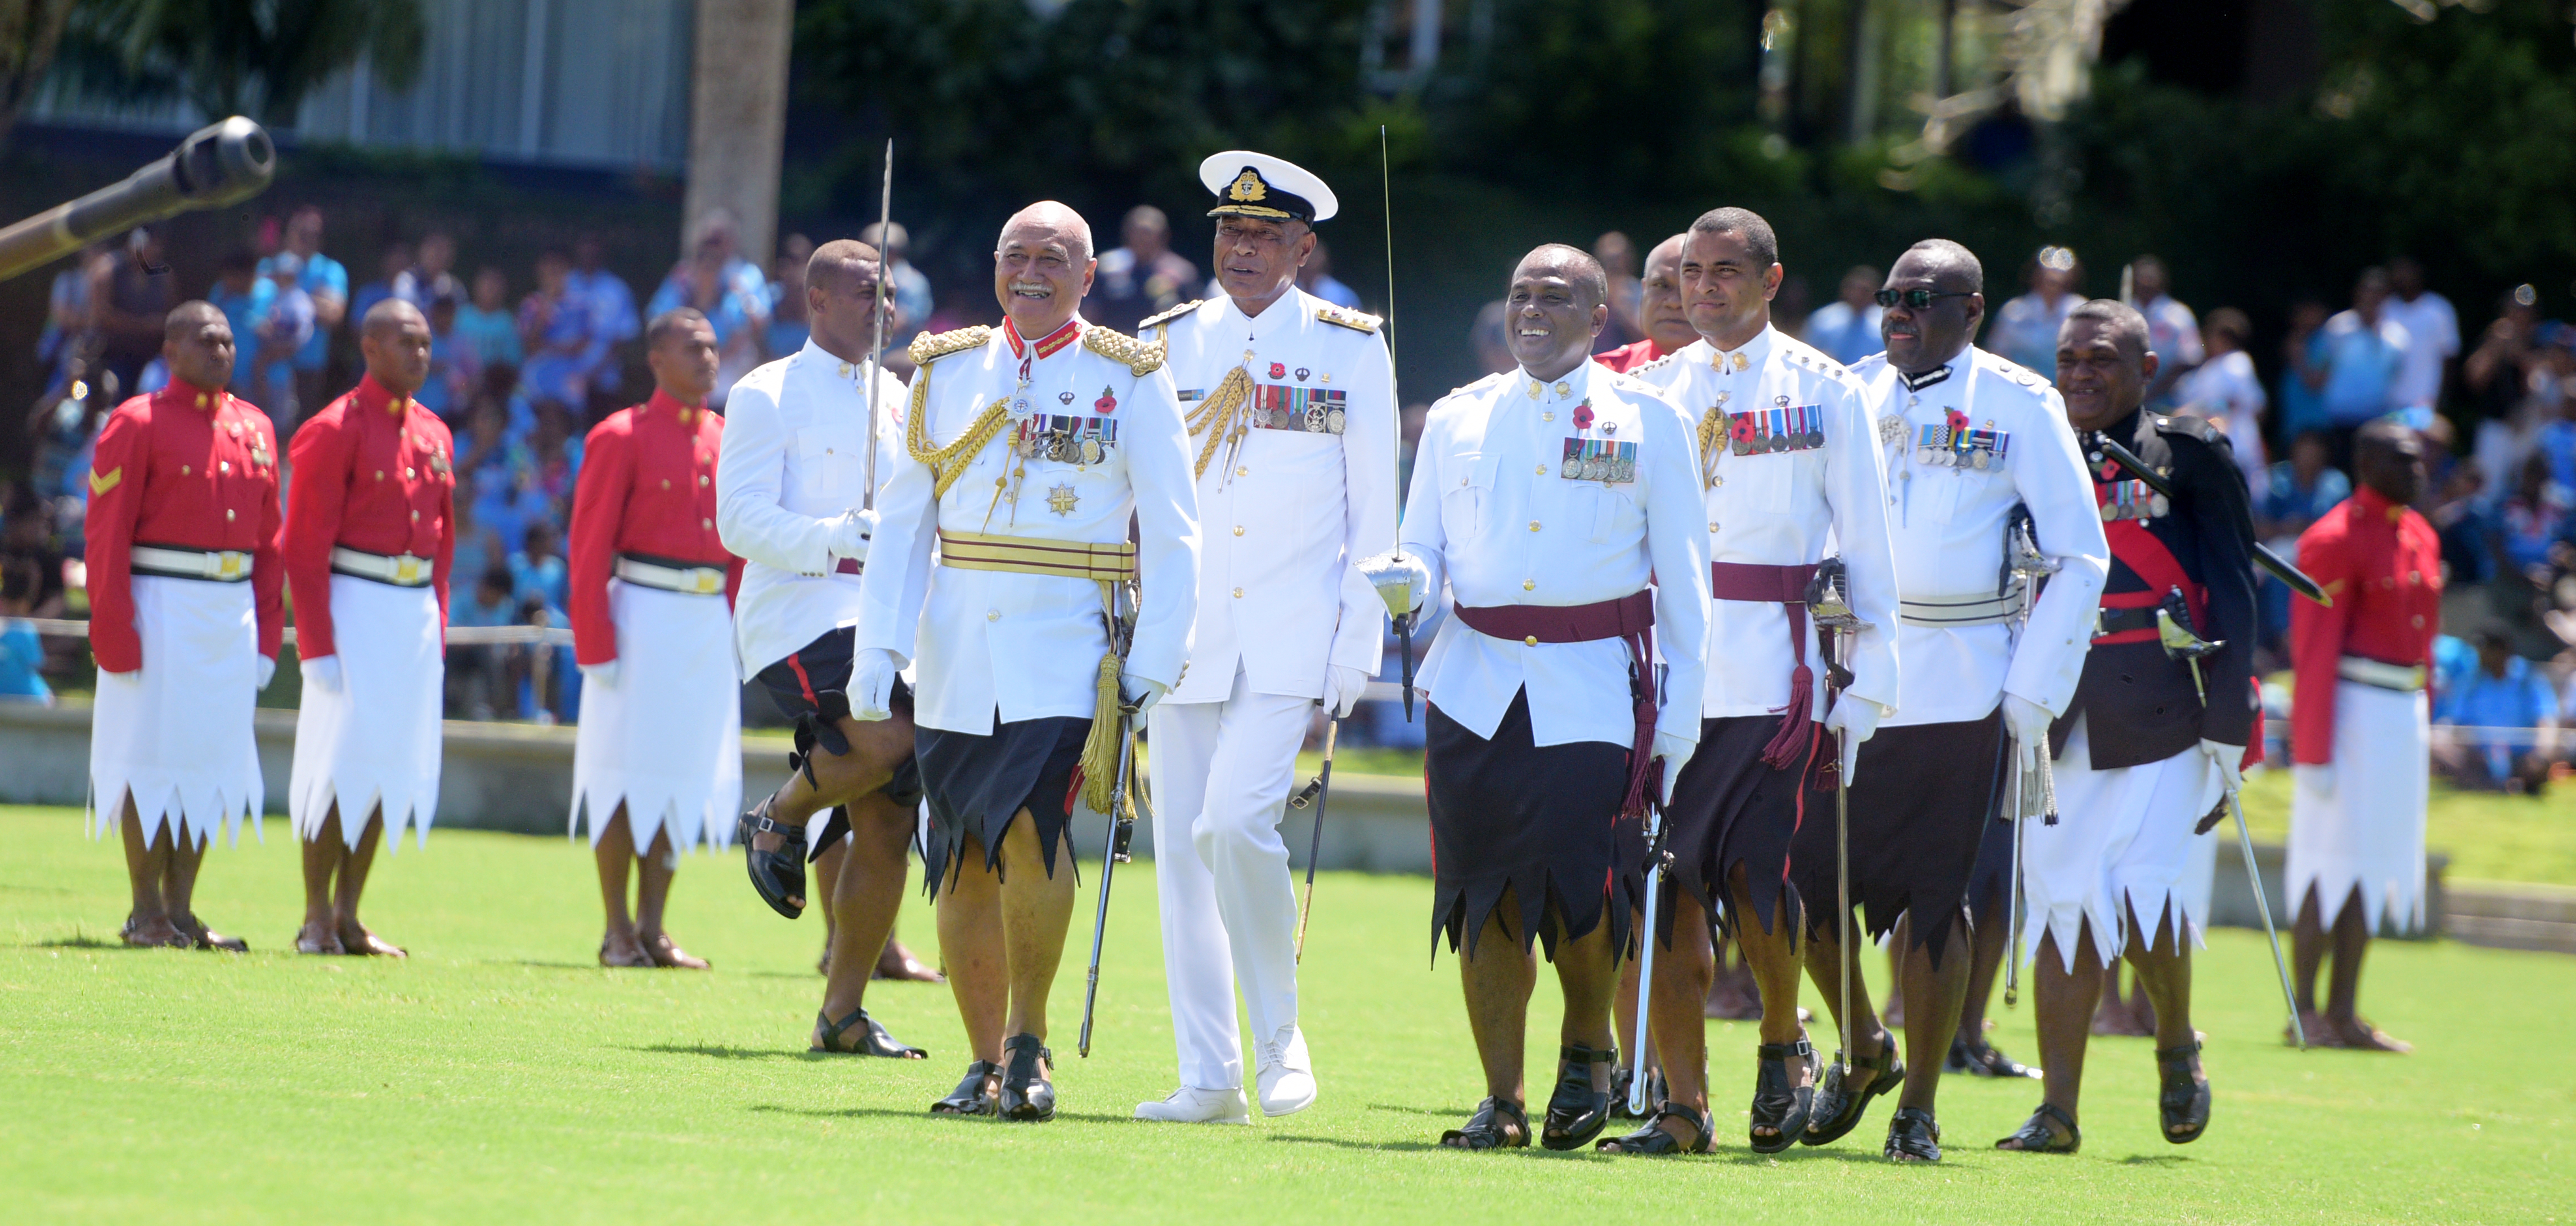 President and Commander-in-Chief, Jioji Konrote followed by RFMF Commander, Rear Admiral Viliame Naupoto during the 50th anniversary of Independence commemorative medal during Fiji Day Parade at Albert Park on October 7, 2020. Photo: Ronald Kumar.